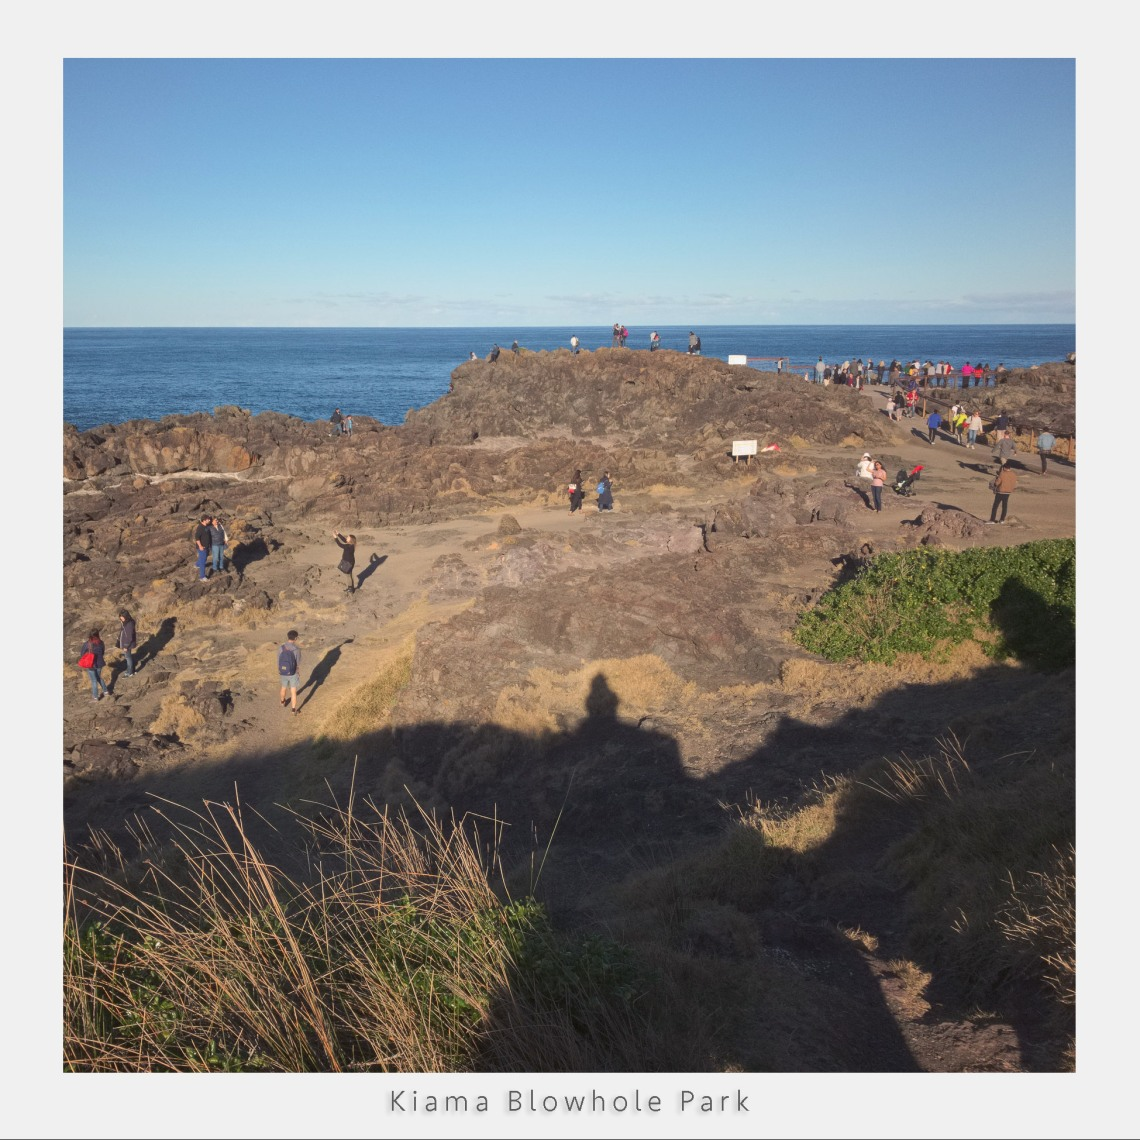 Kiama Blowhole park taken with iPad Pro using DNG, Test image.